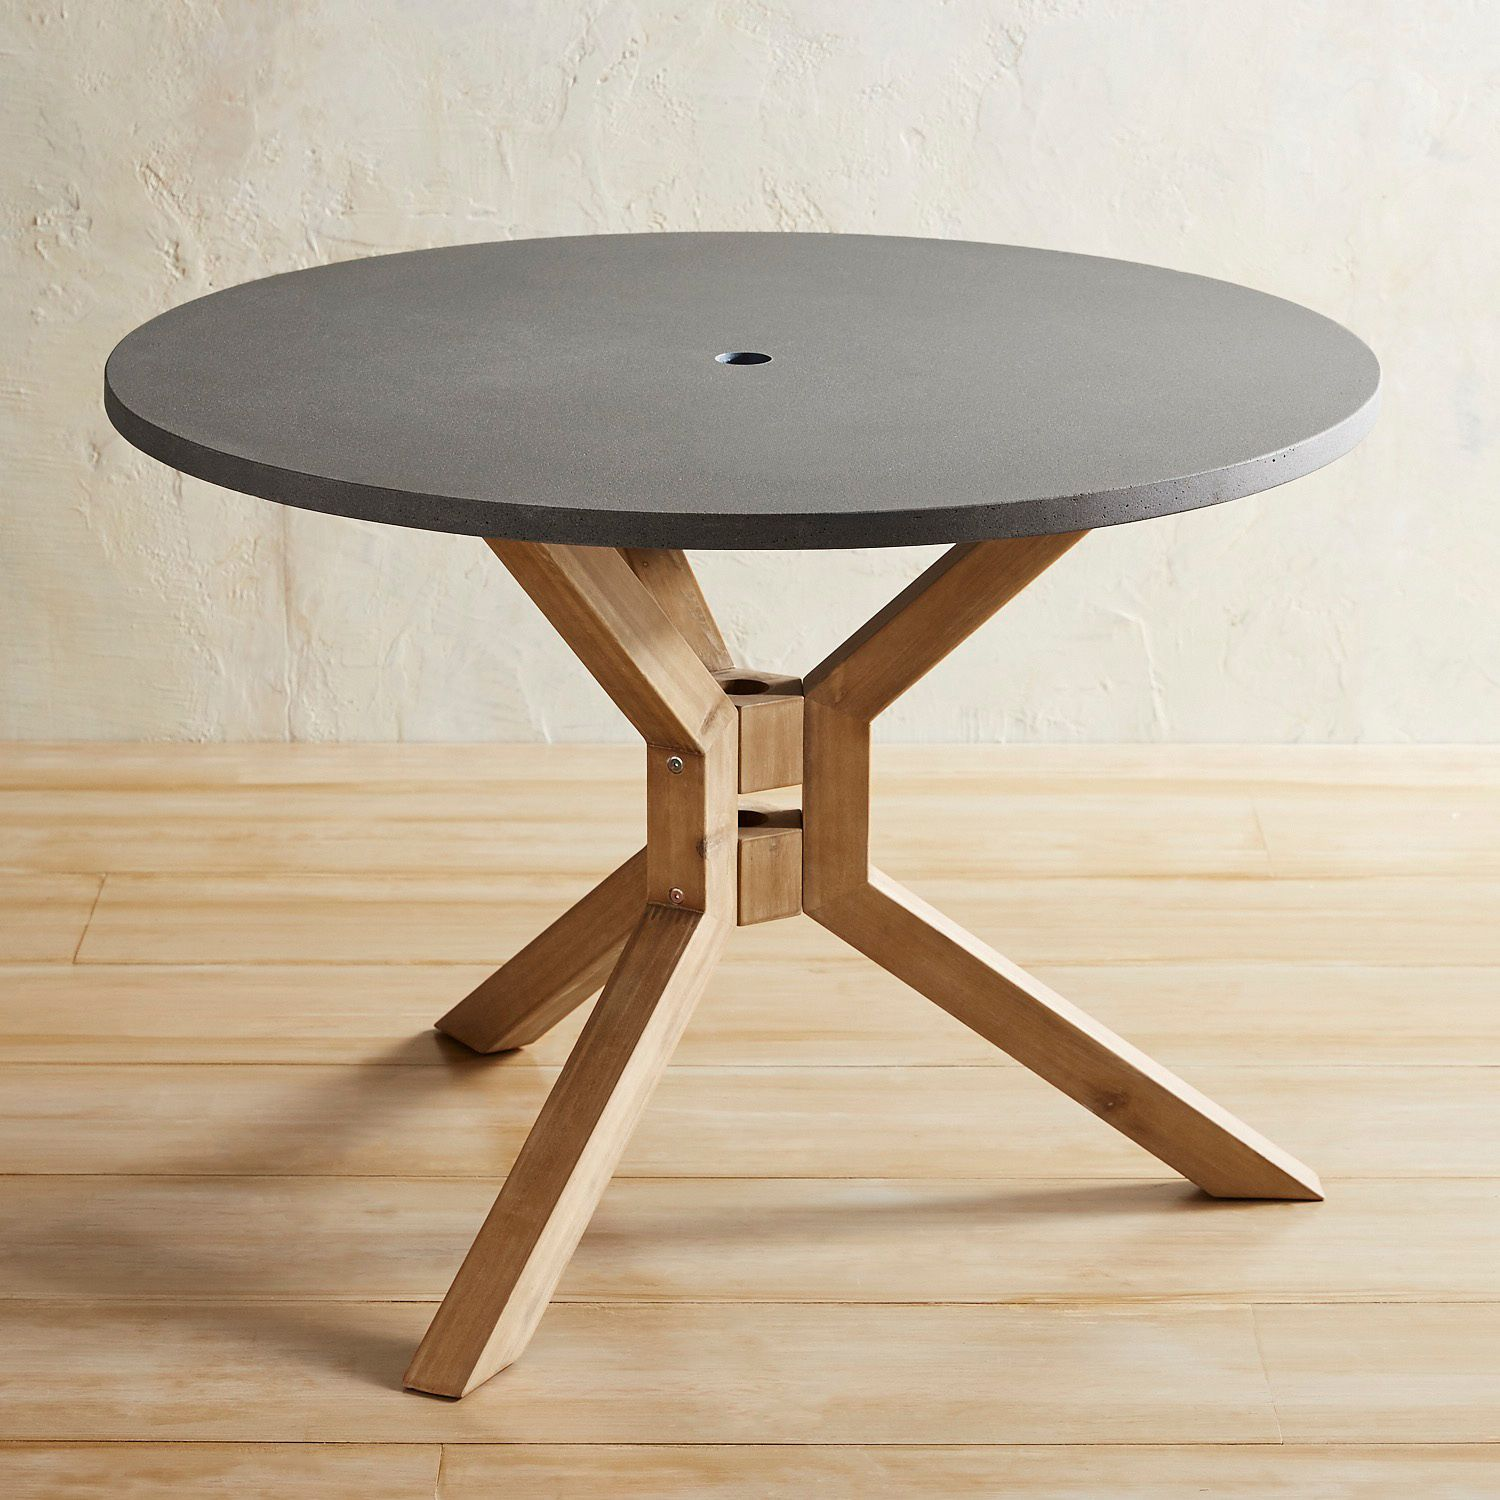 anders round polystone concrete dining table pier imports small accent tables one collection barn door designs wooden coffee with drawers room furniture slide under sofa outdoor